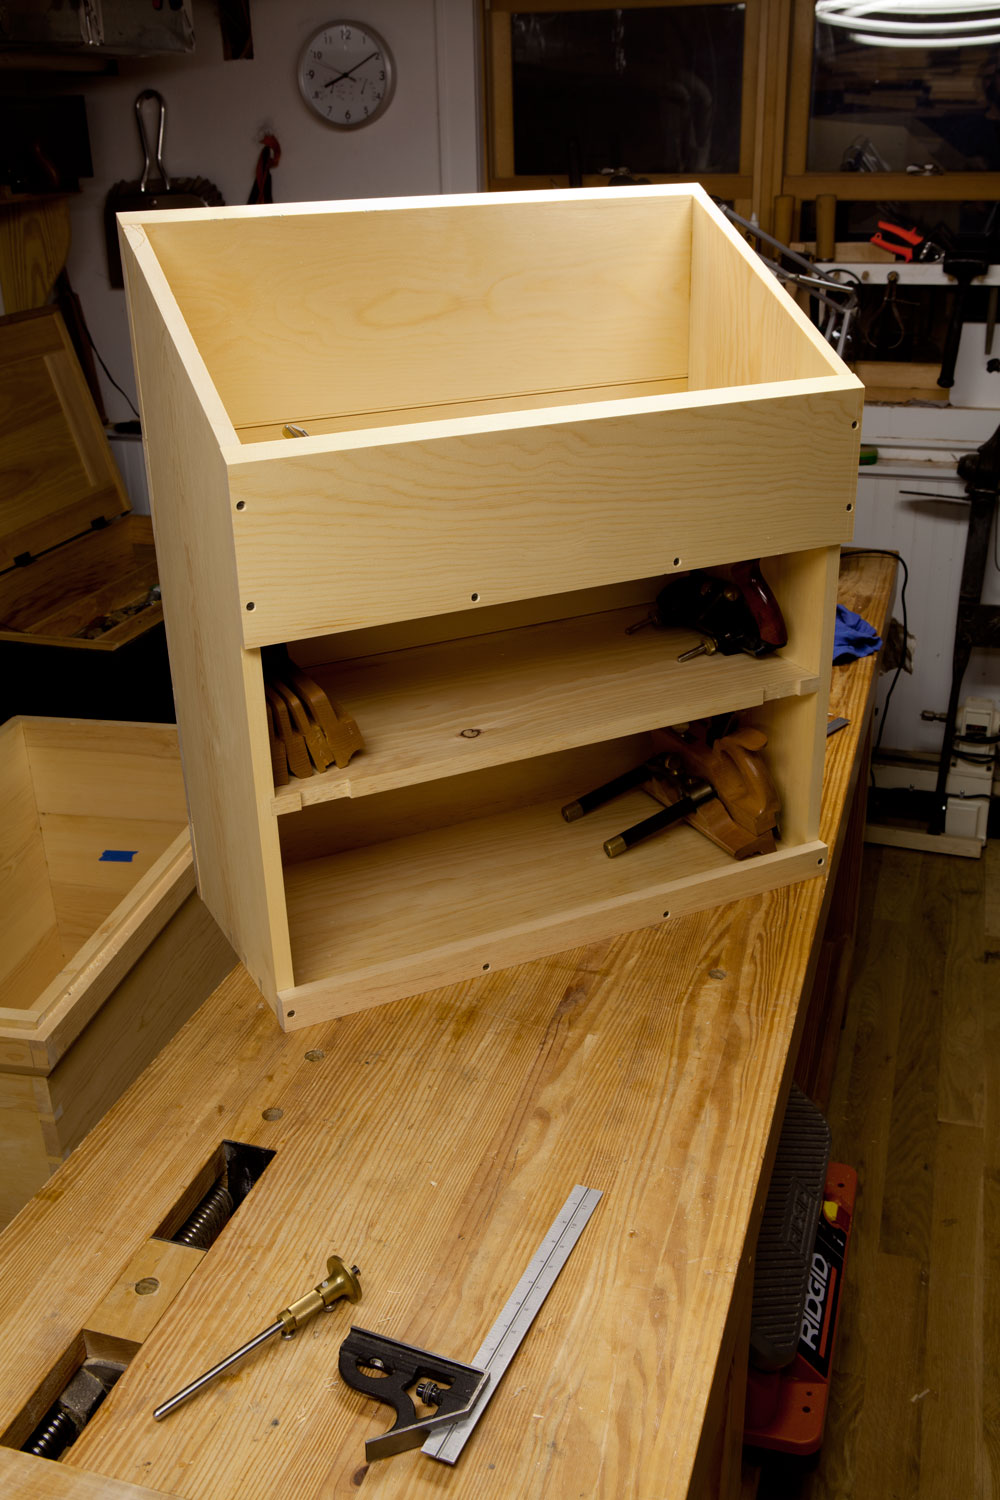 Diy Oak Machinist Tool Chest Plans Wooden Pdf Bedside